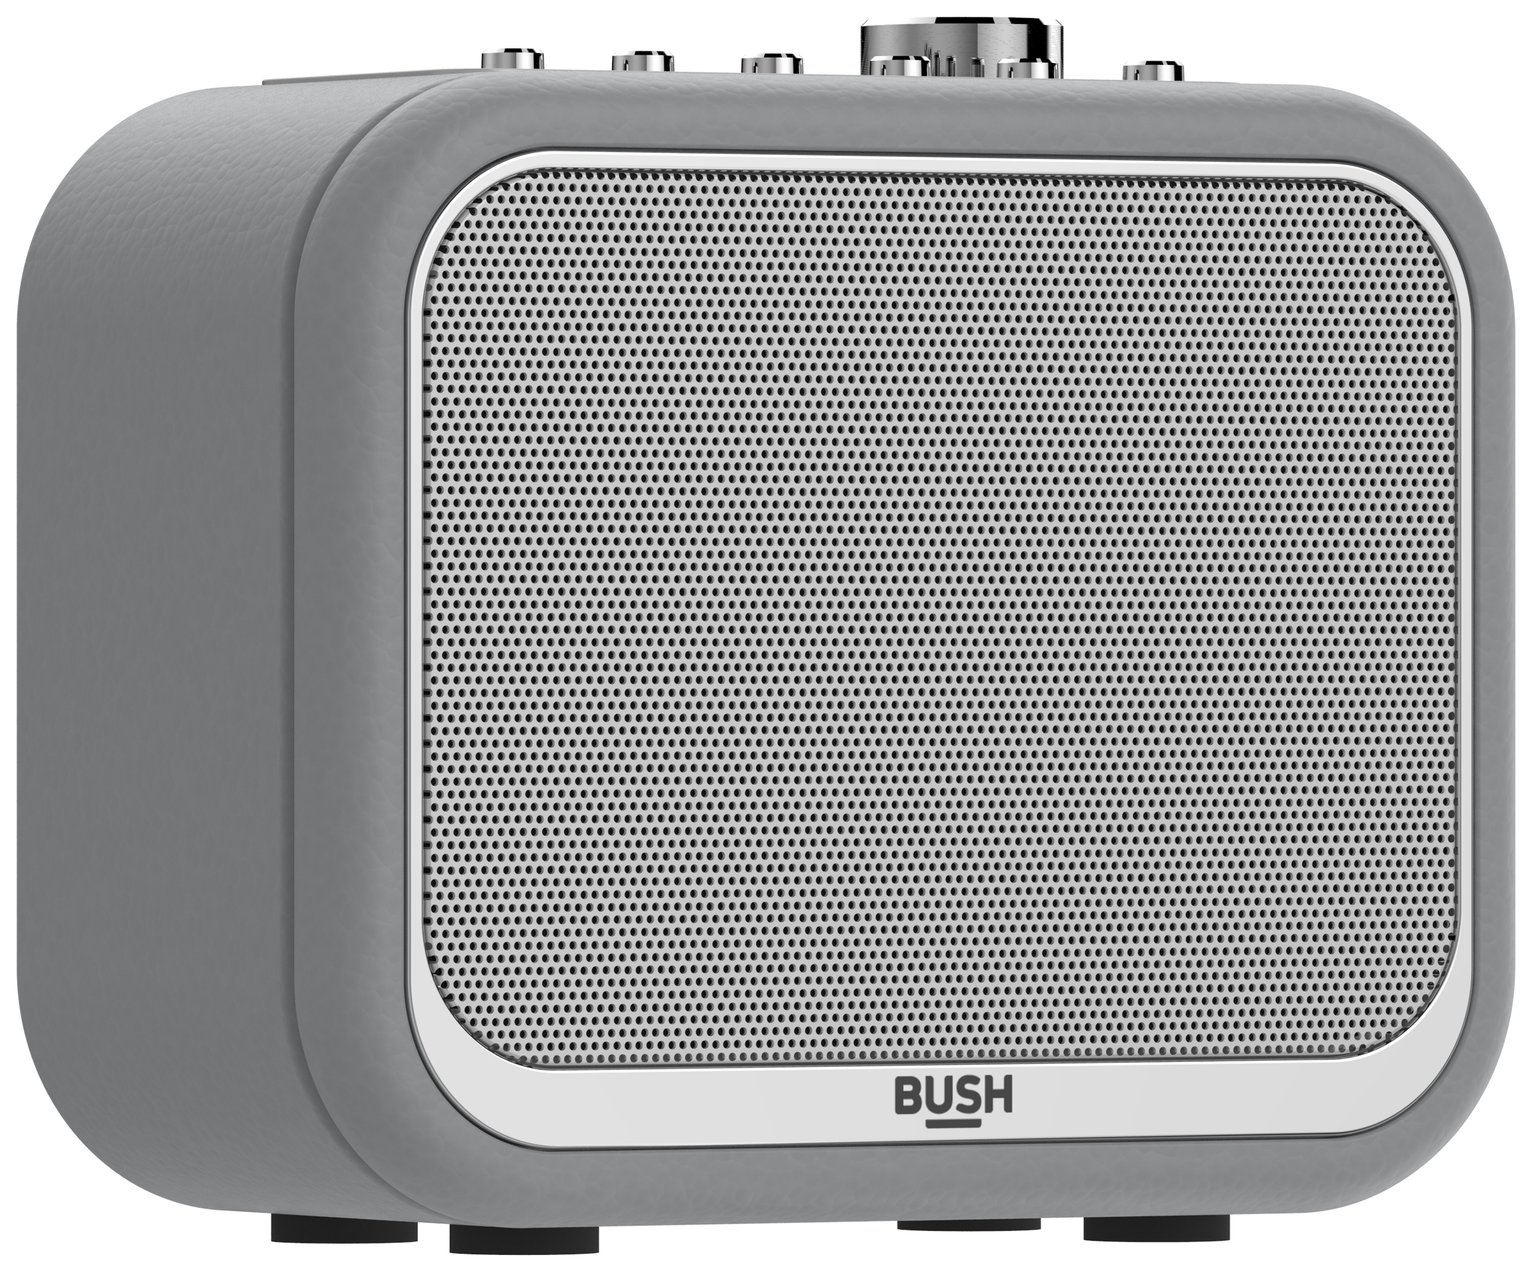 Bush Classic Mono Leather DAB Radio - Grey